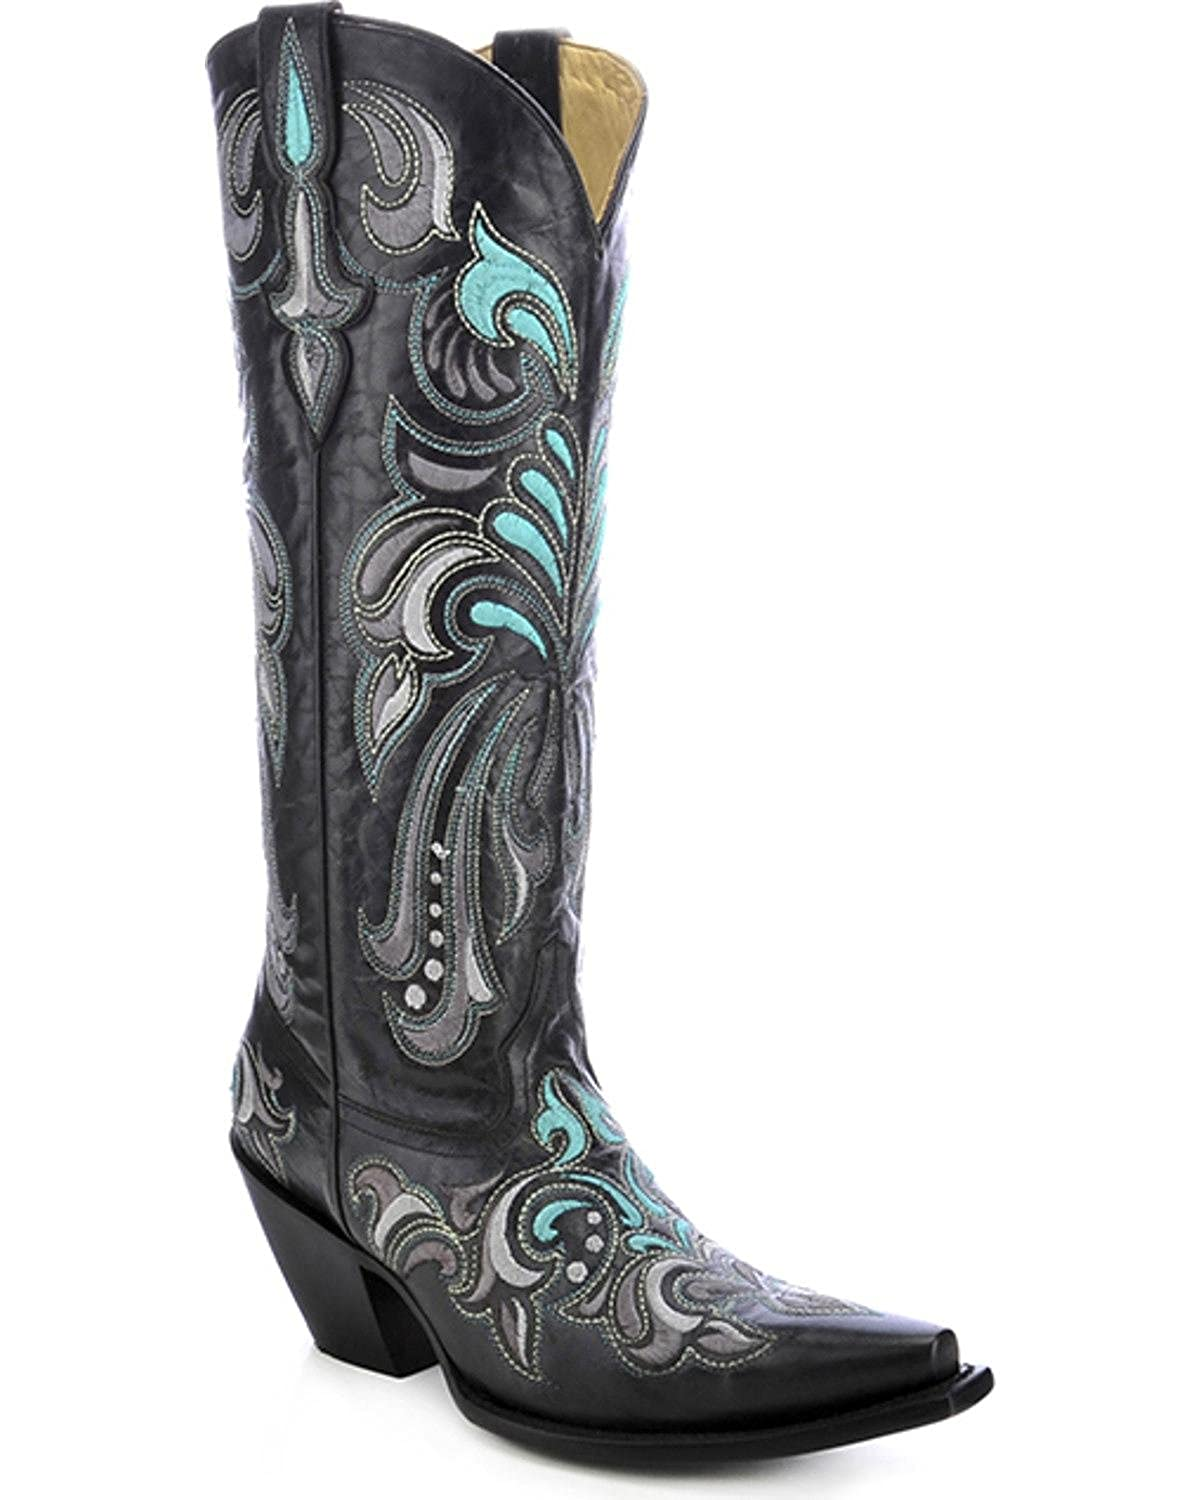 CORRAL Women's Embroidered Tall Cowgirl Boot Snip Toe - G1286 Black